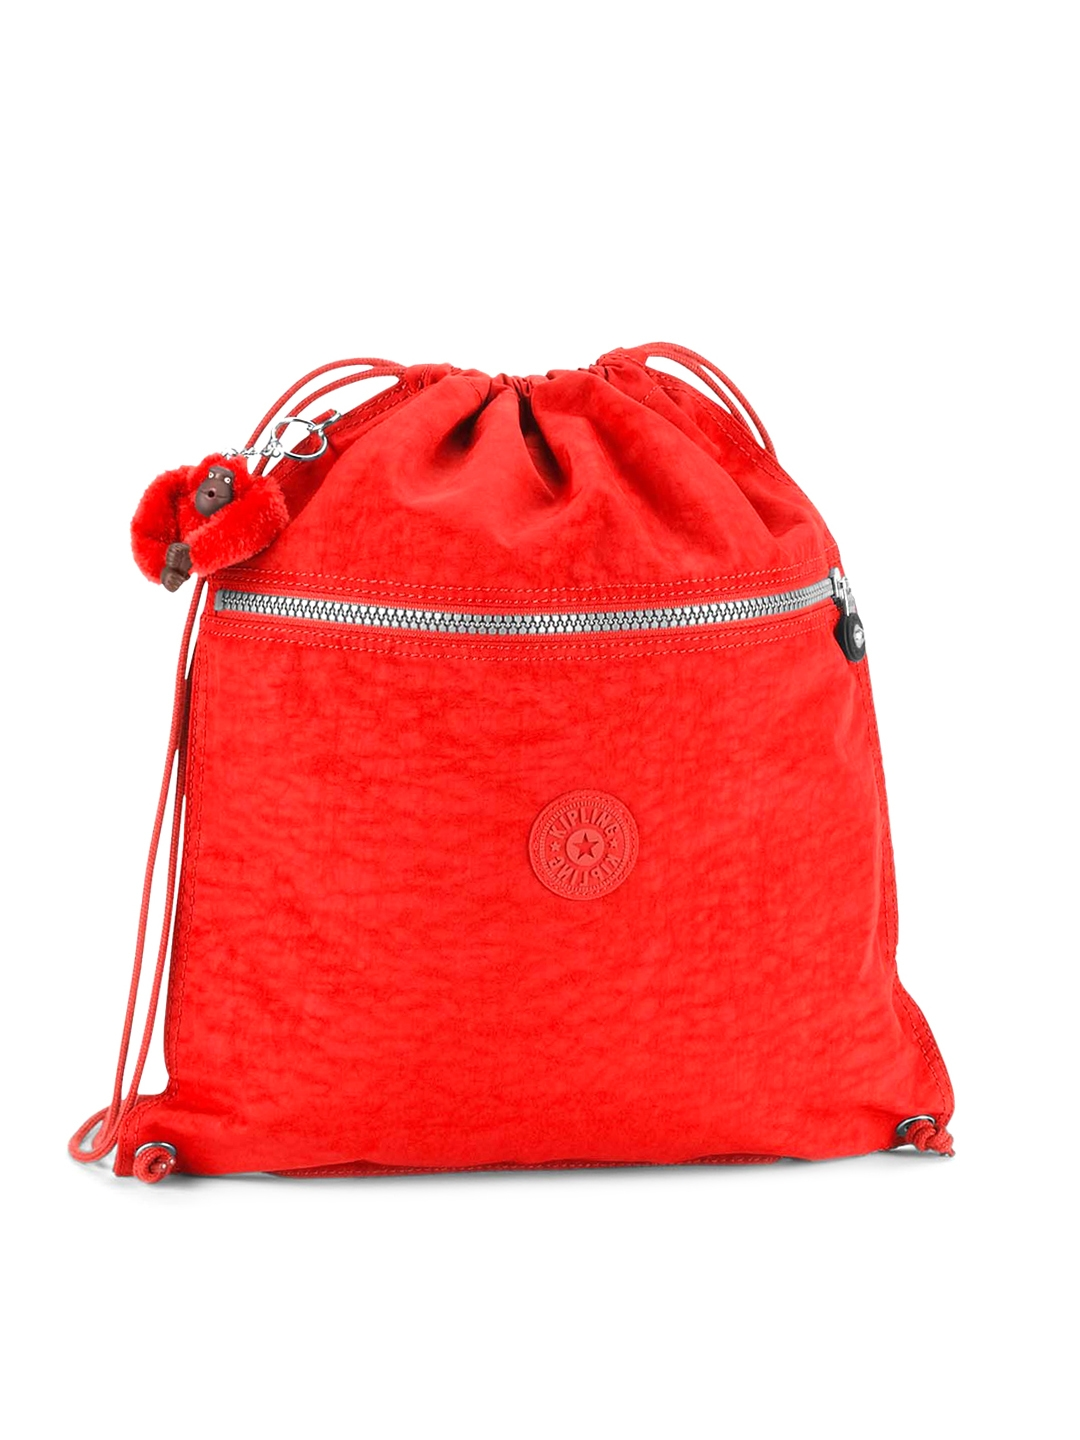 9be67bca3d18 Buy Kipling Girls Red Backpack - Backpacks for Girls 1819950